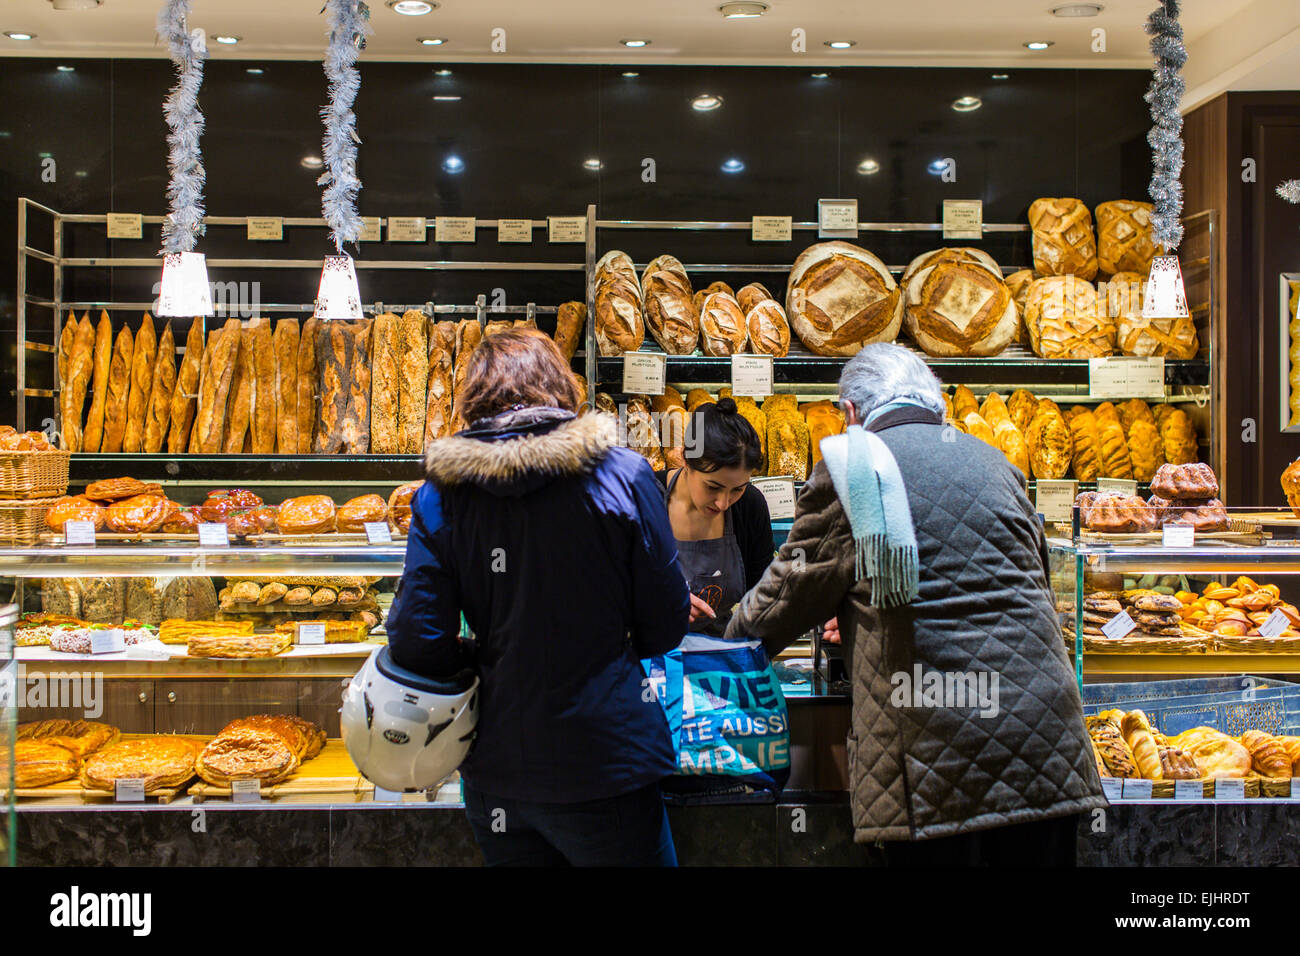 eric kayser home made bread shop paris france stock photo royalty free image 80296884 alamy. Black Bedroom Furniture Sets. Home Design Ideas